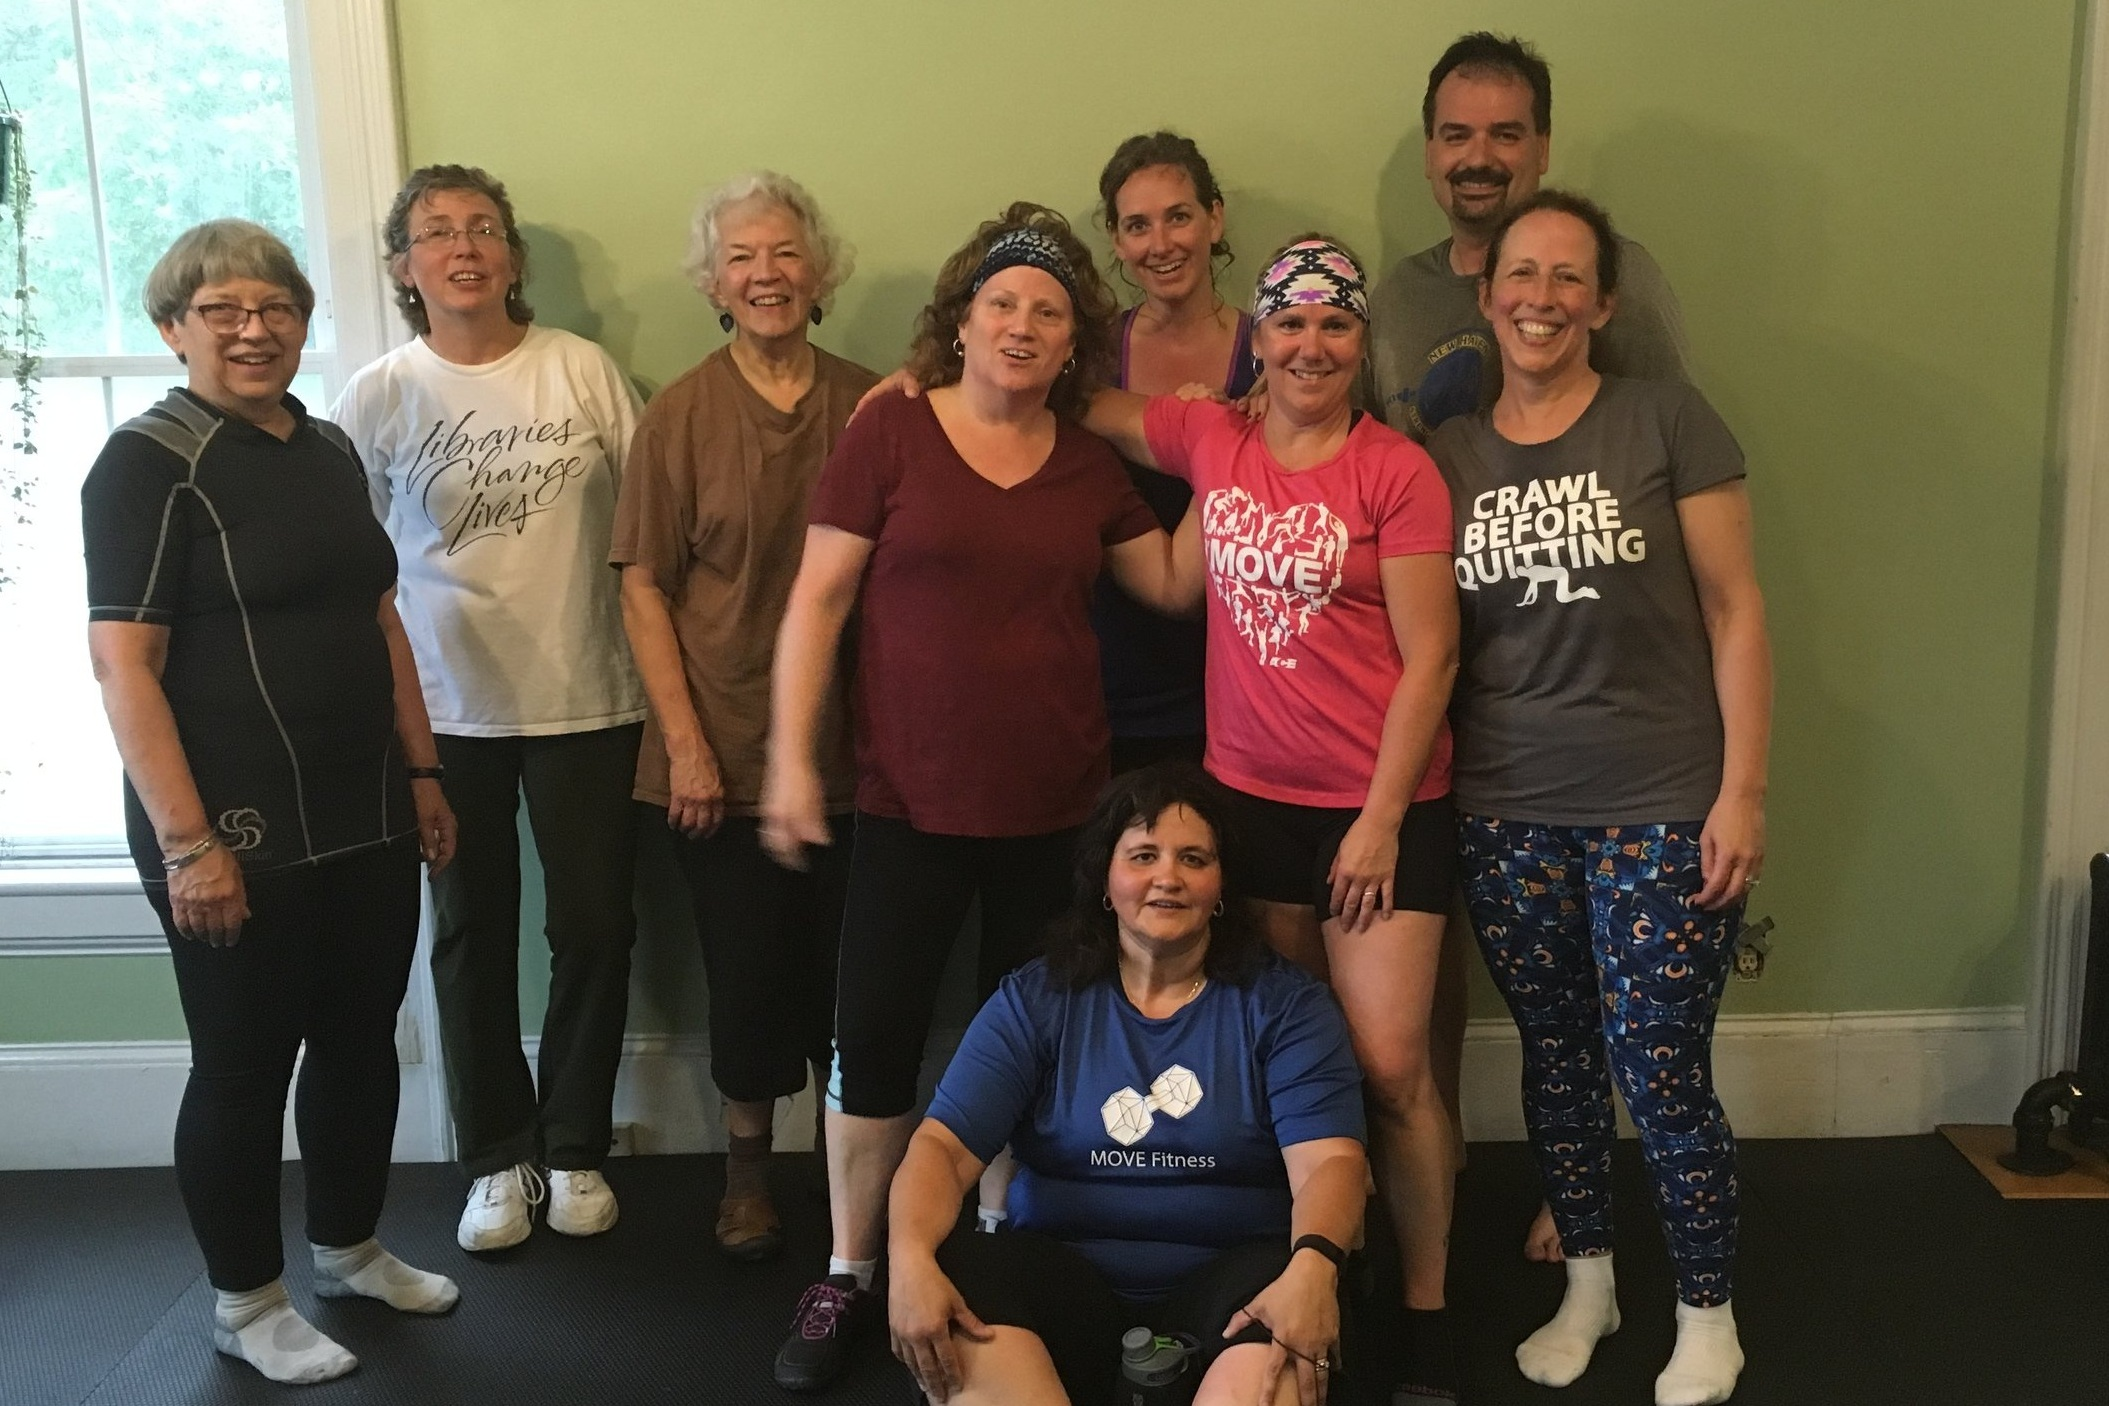 Bootcamp Crew! - Kristy (center, in pink) has always offered great energy and fun in bootcamp classes!